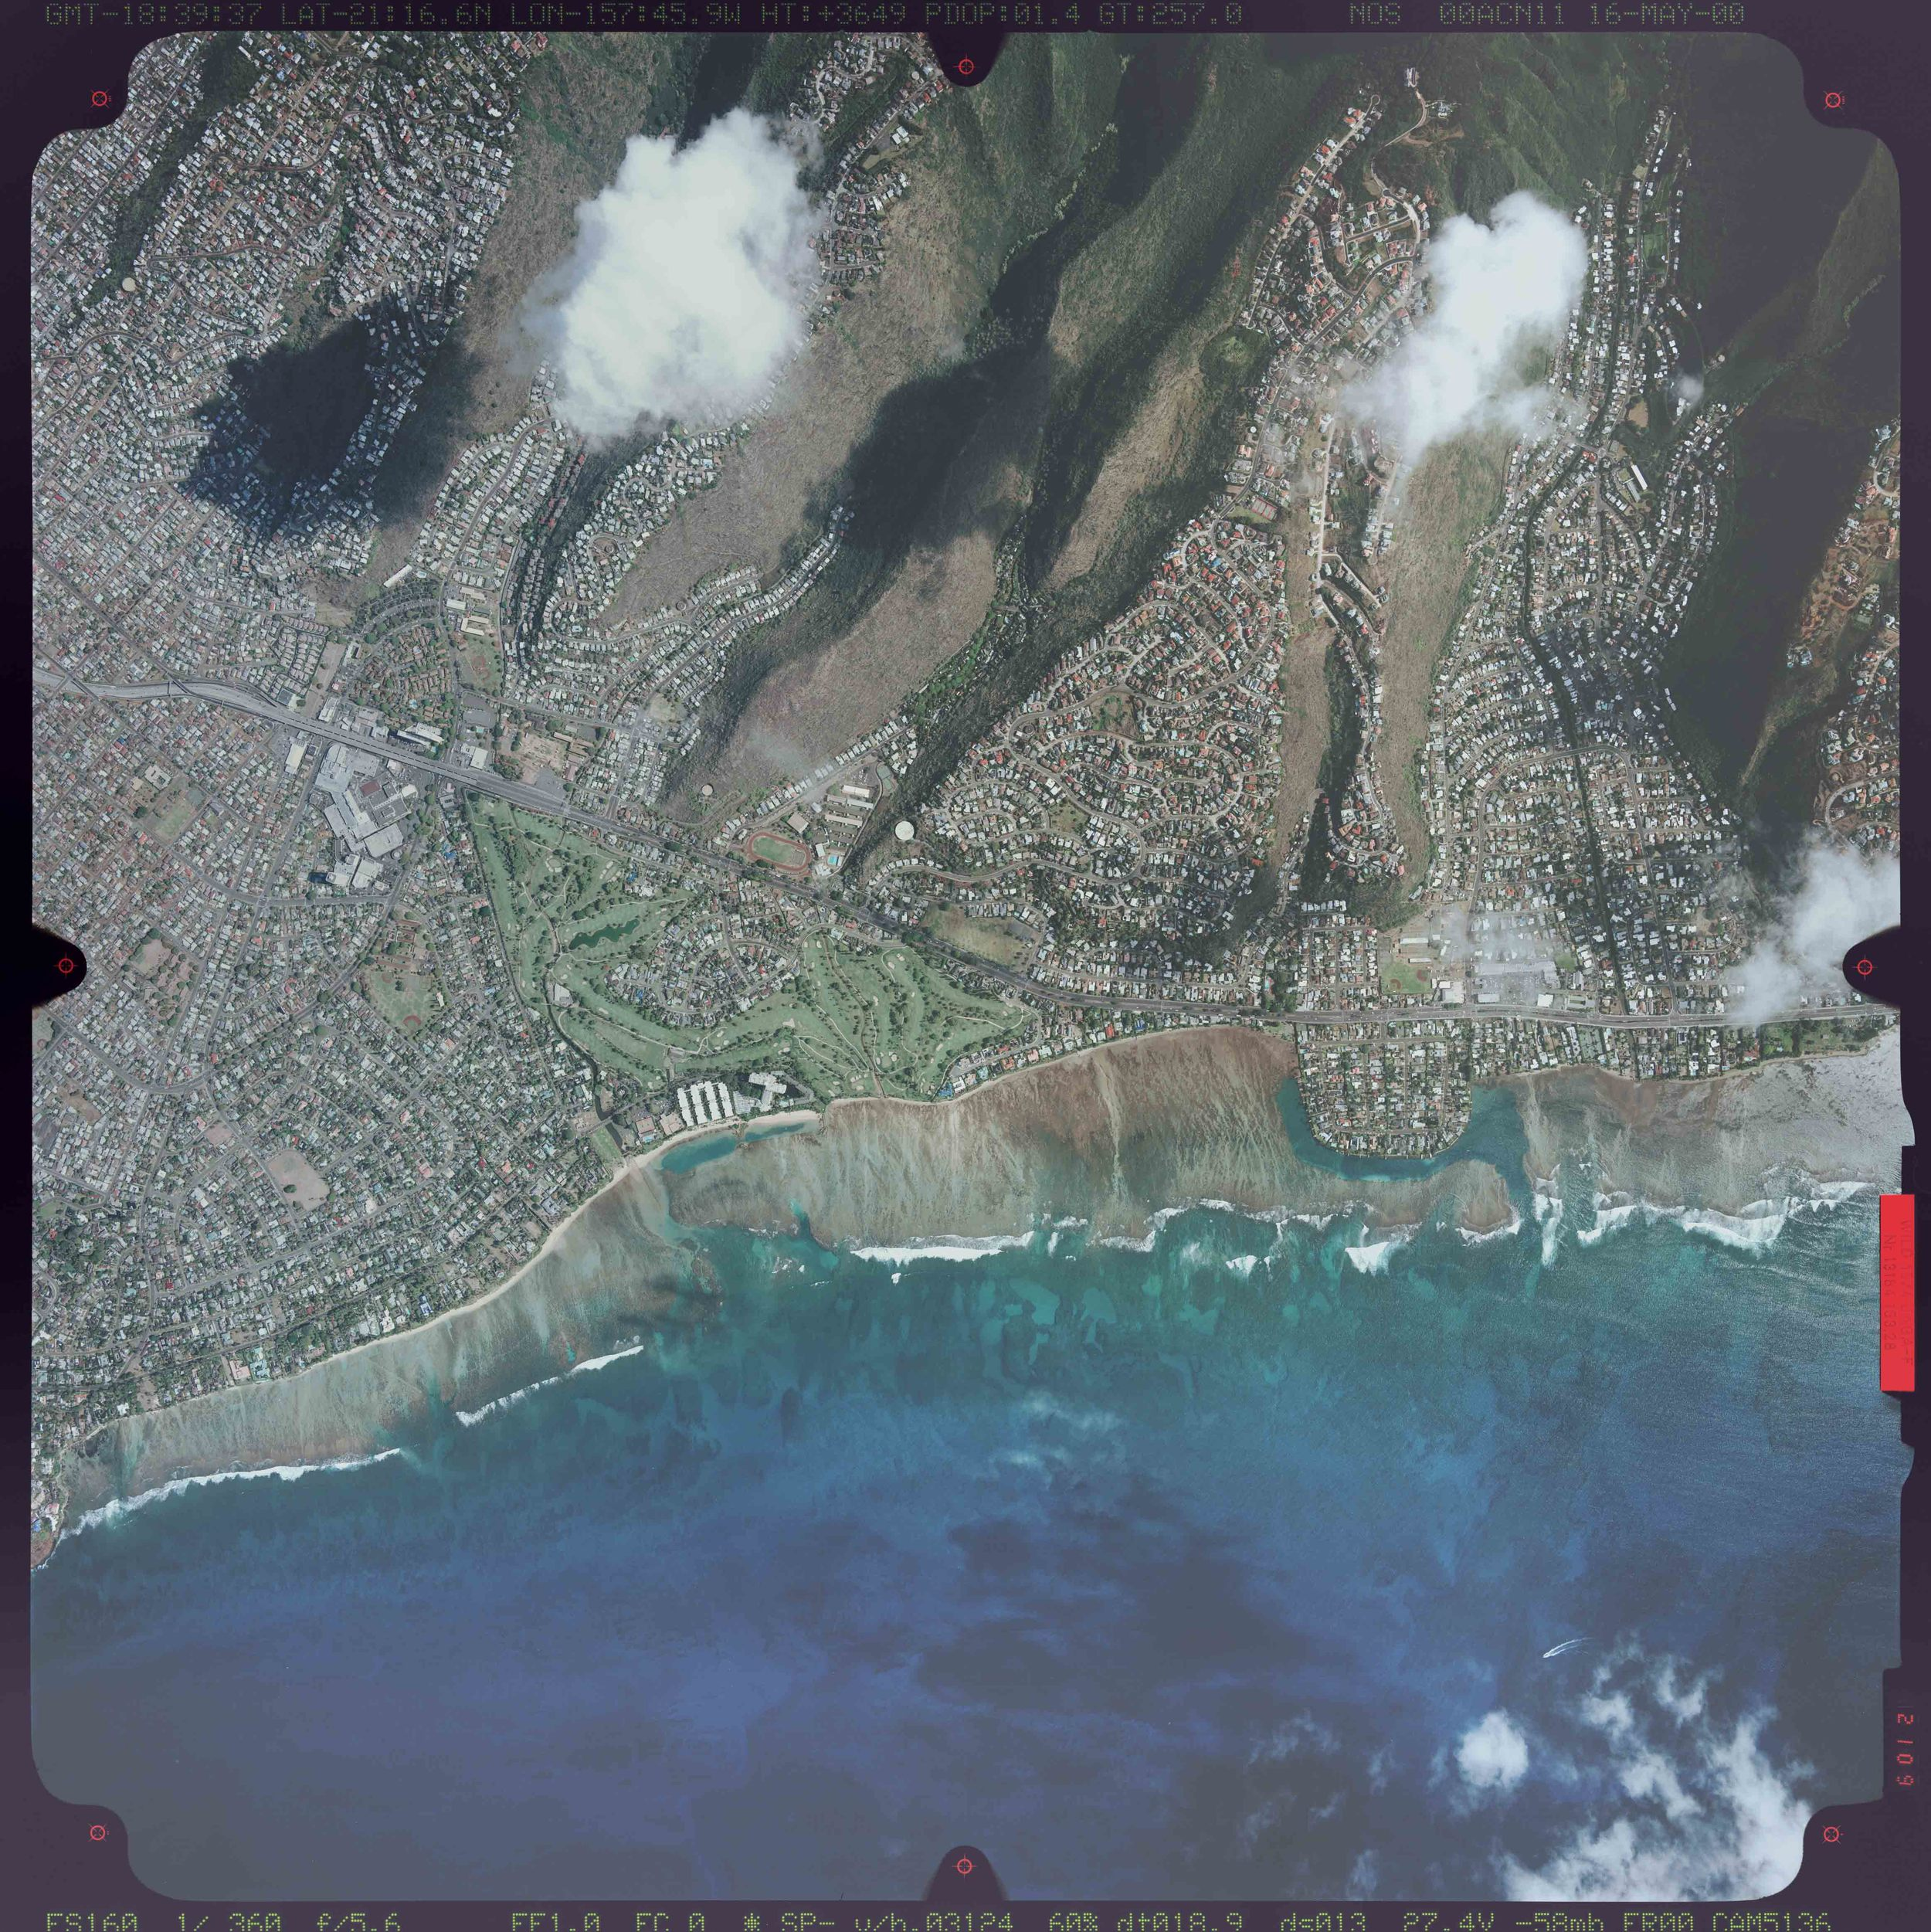 """The Ko'olau Range intermingles with neighborhoods of Honolulu.  [Image:National Oceanic and Atmospheric Administration. """"Frame: 2109"""" [aerial photograph]. Scale ~1in:1km. Flight line No: 018. 16/5/00.  Downloaded from    http://magis.manoa.hawaii.edu/viewer/   on 15/2/14. ]"""